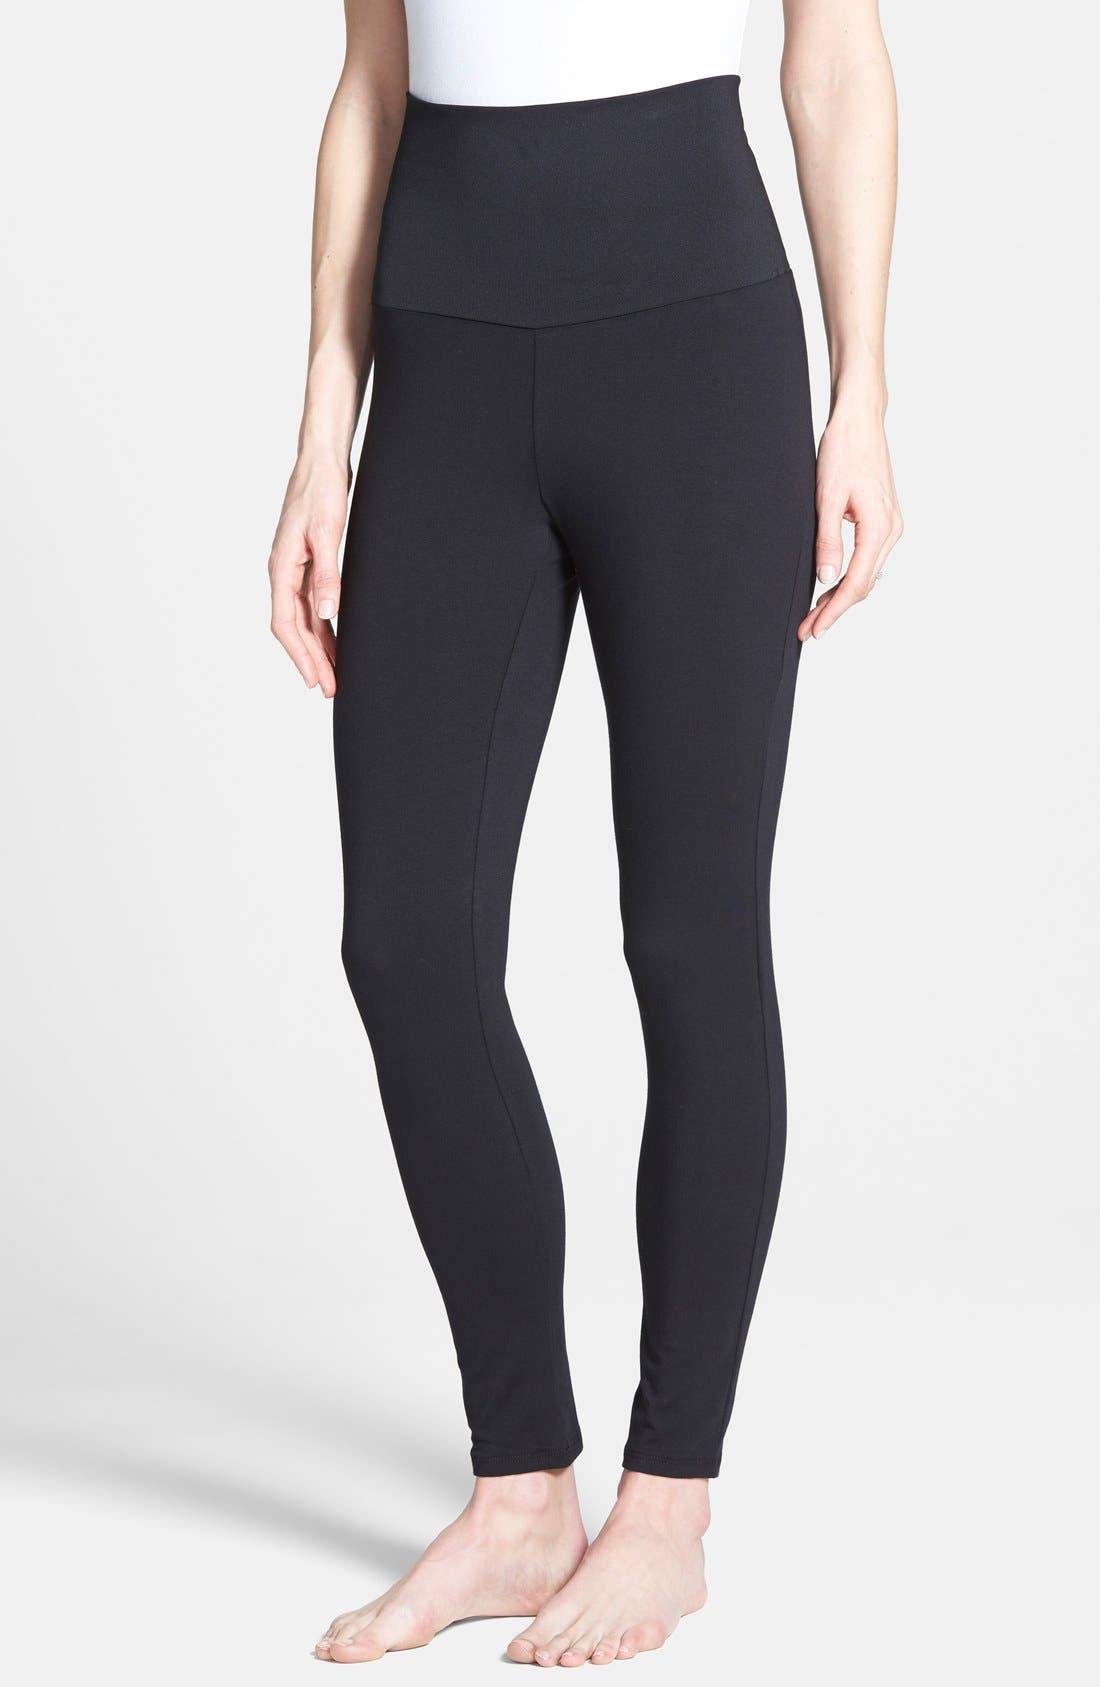 Plus-Size Pants & Leggings